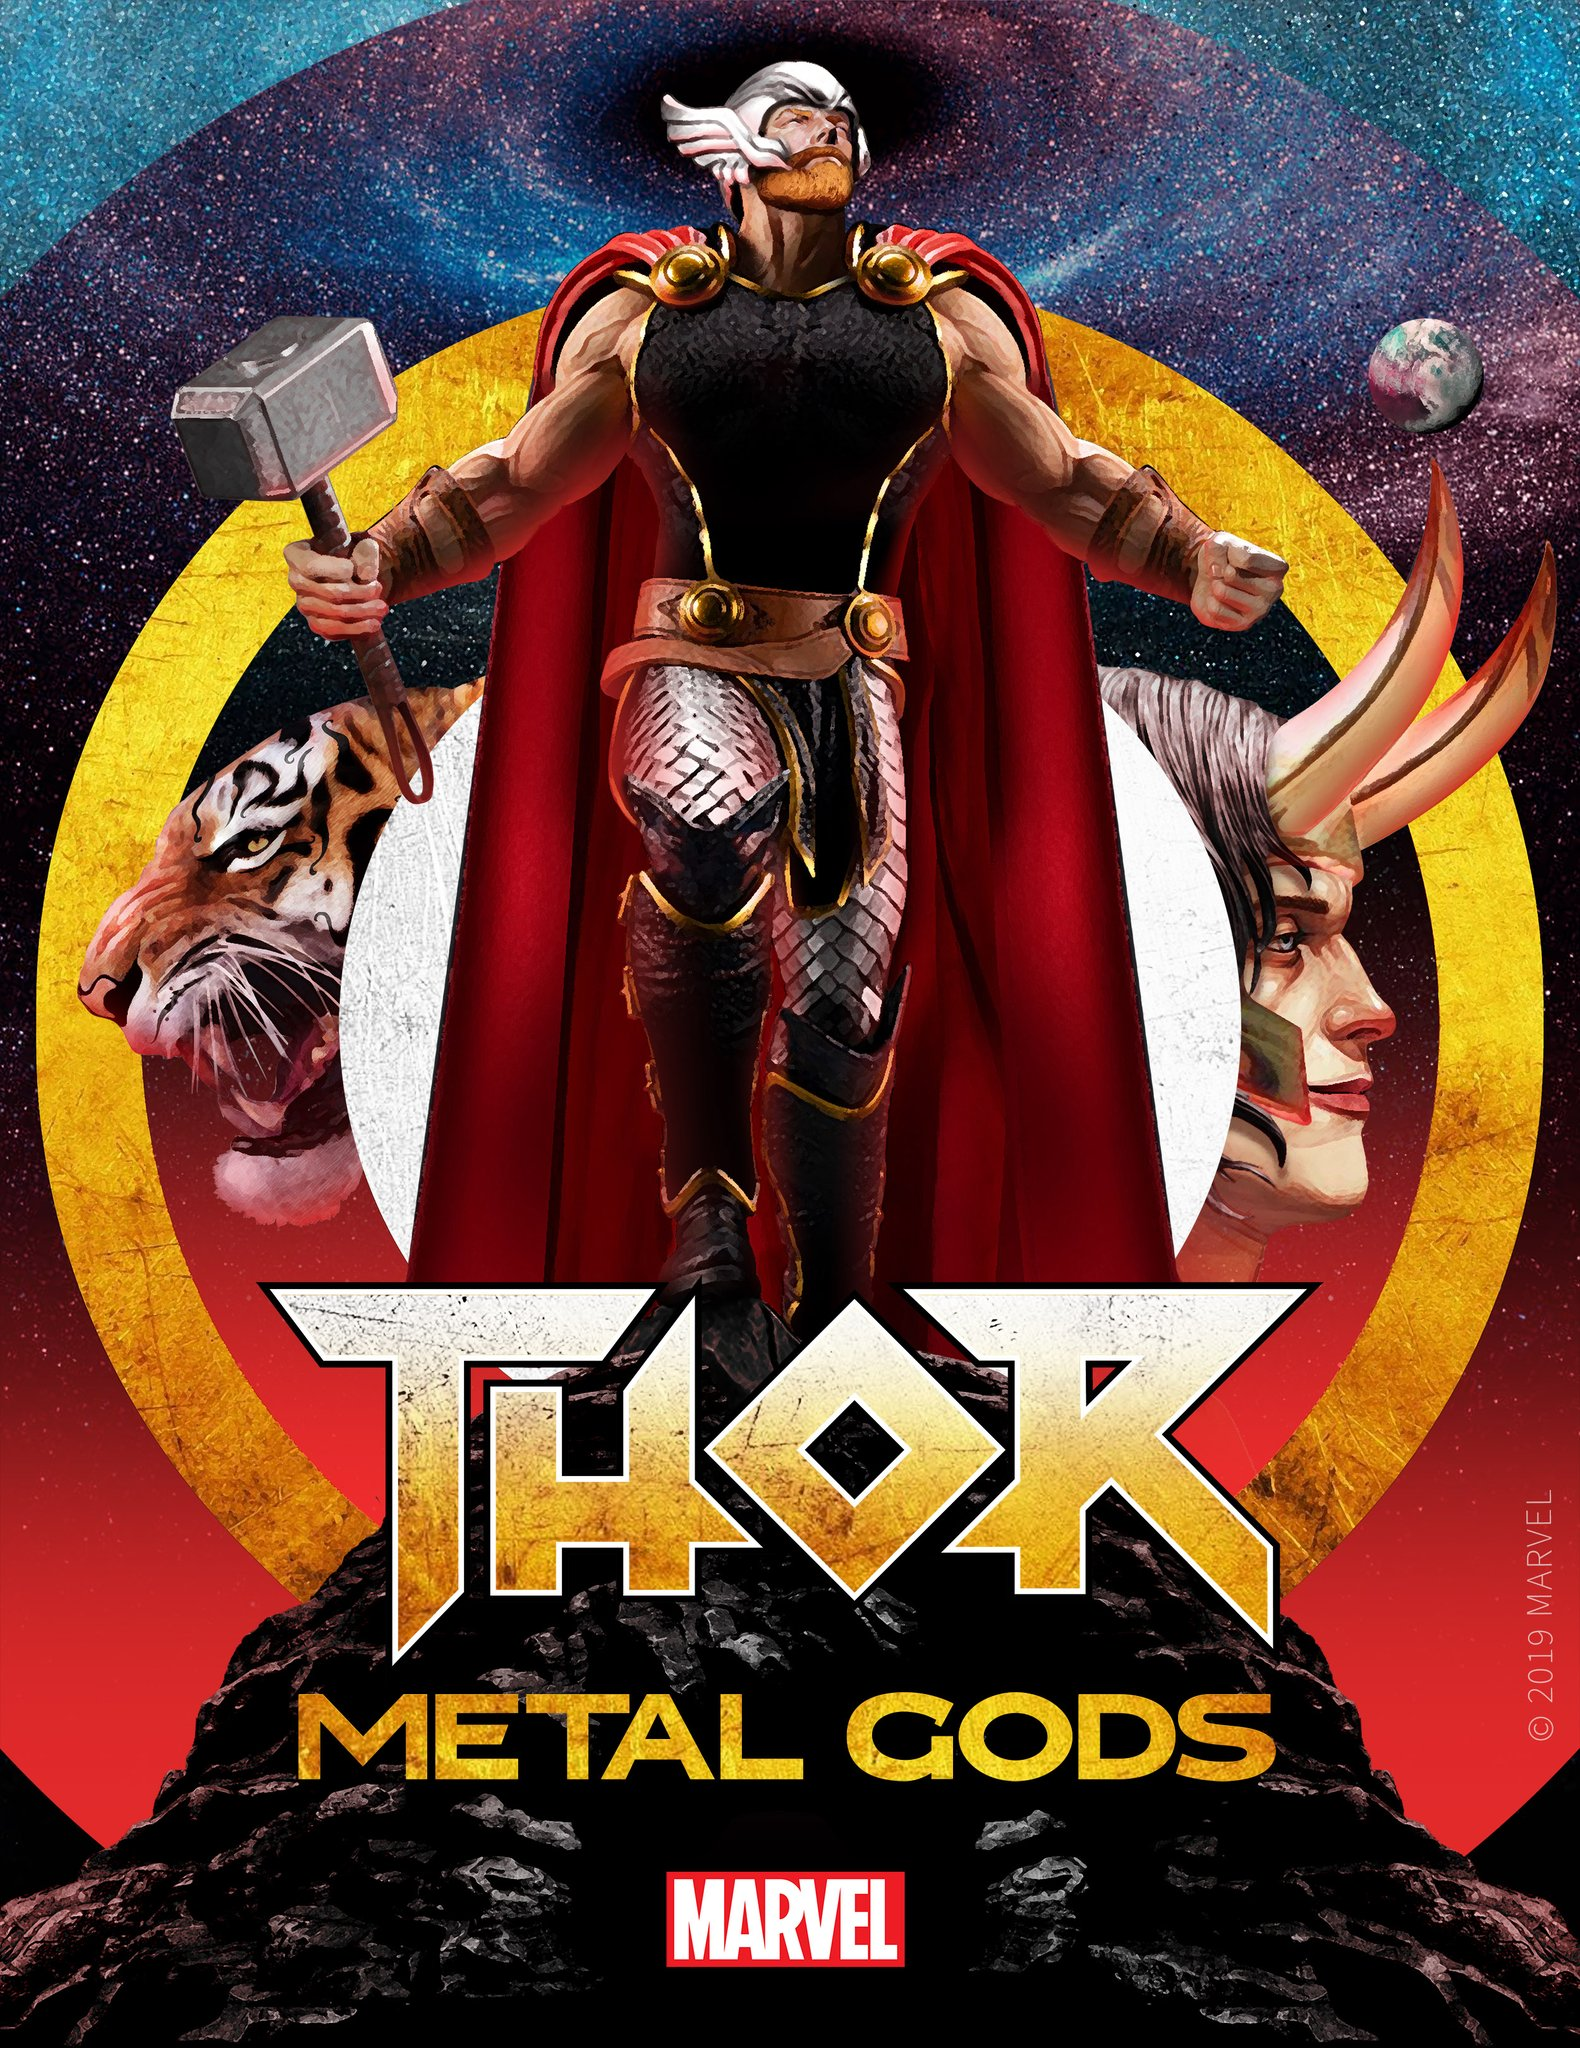 THOR_space_version_VERTICAL_2048x2048